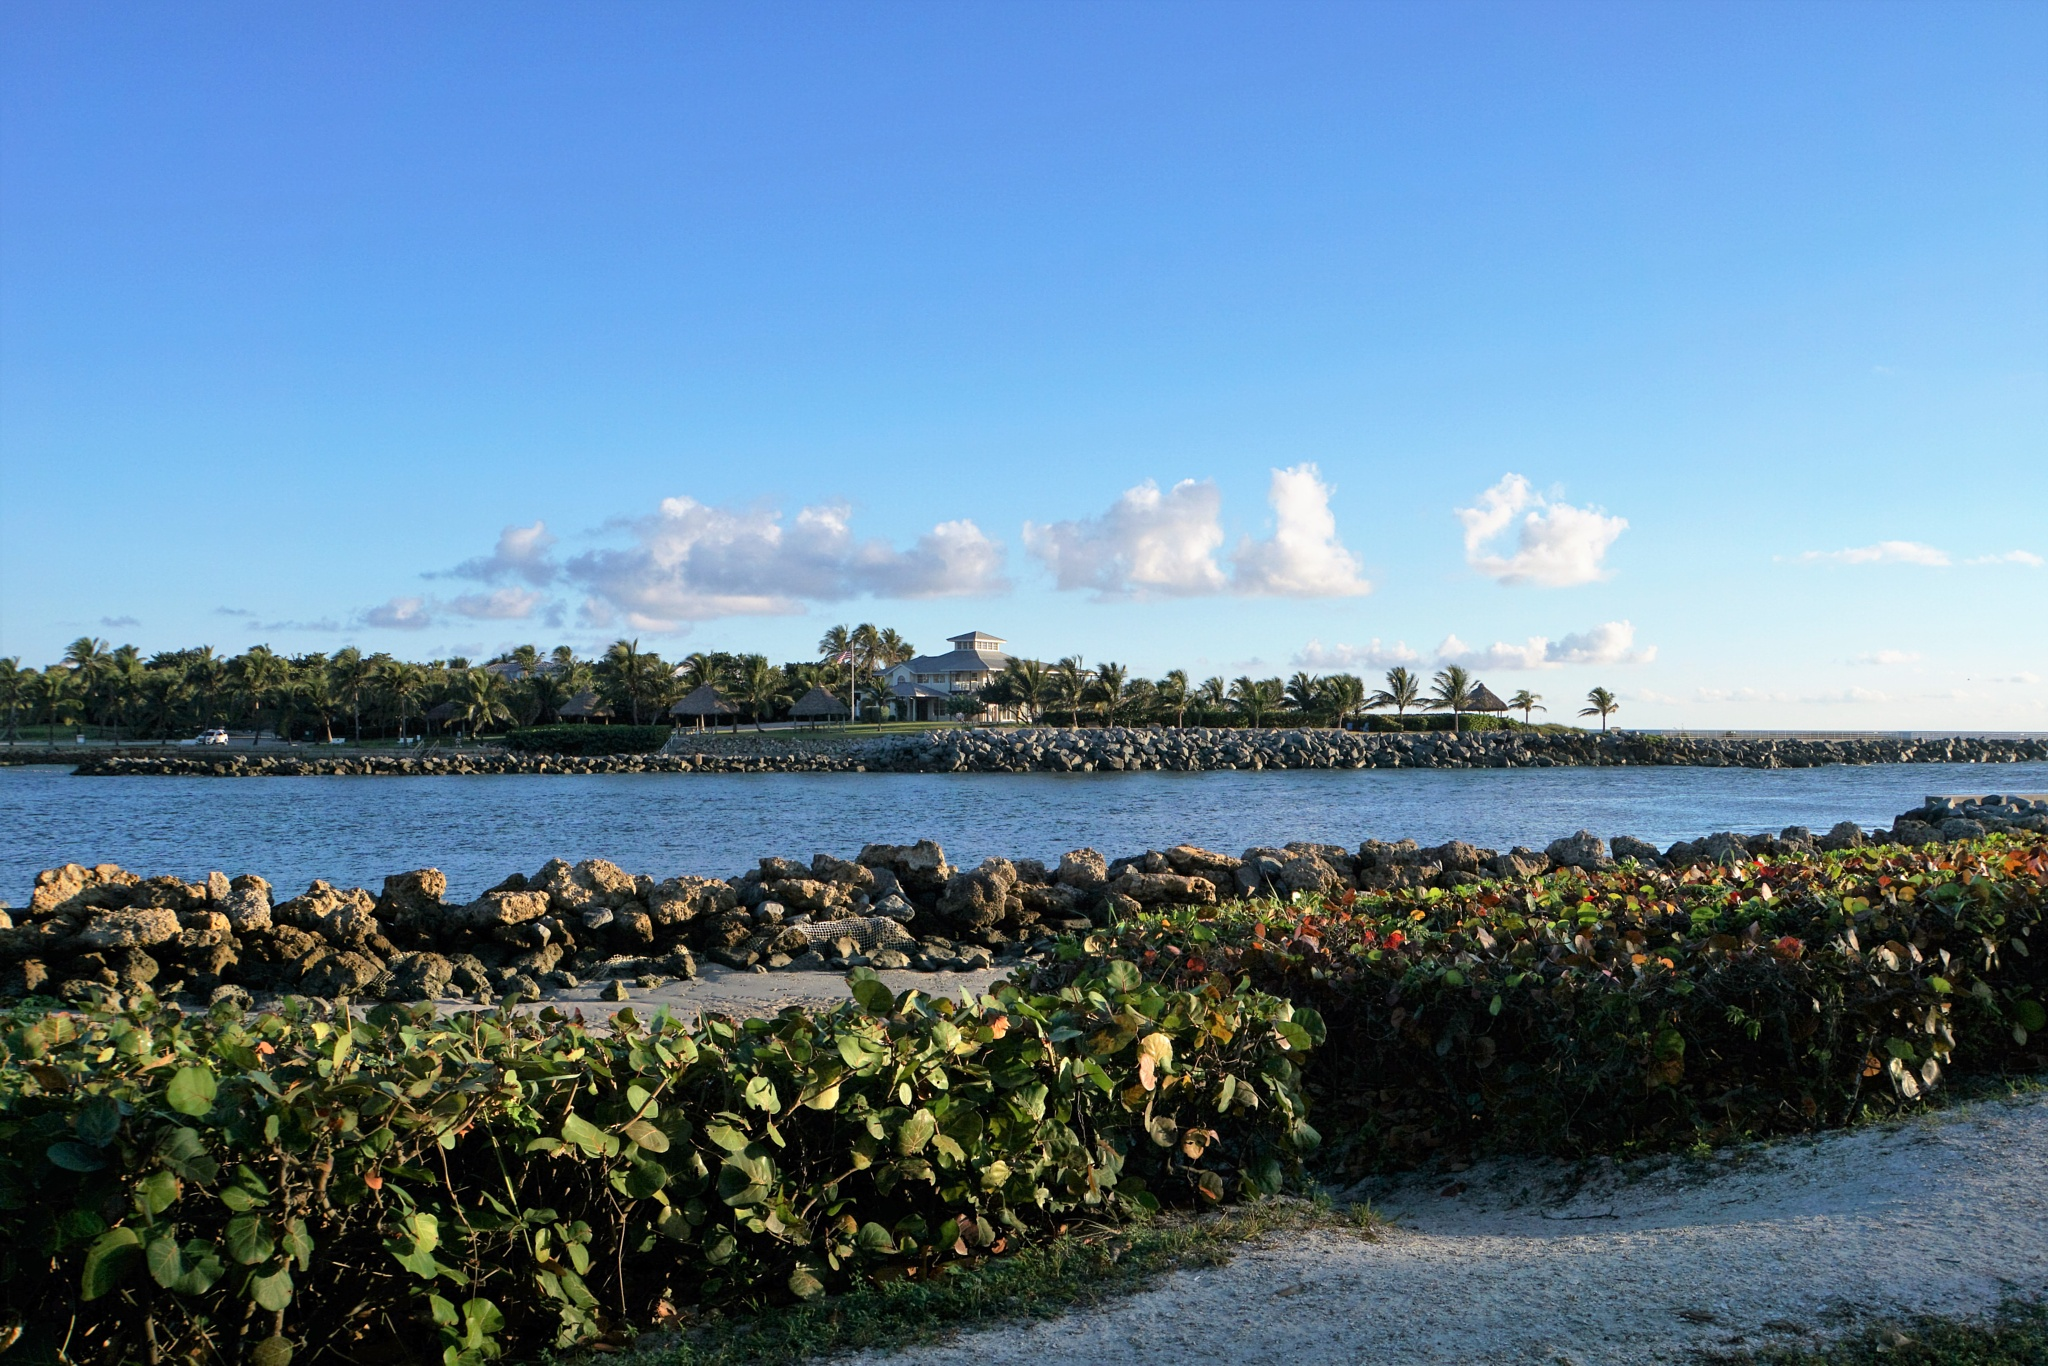 Jupiter inlet by Greg L. Elder